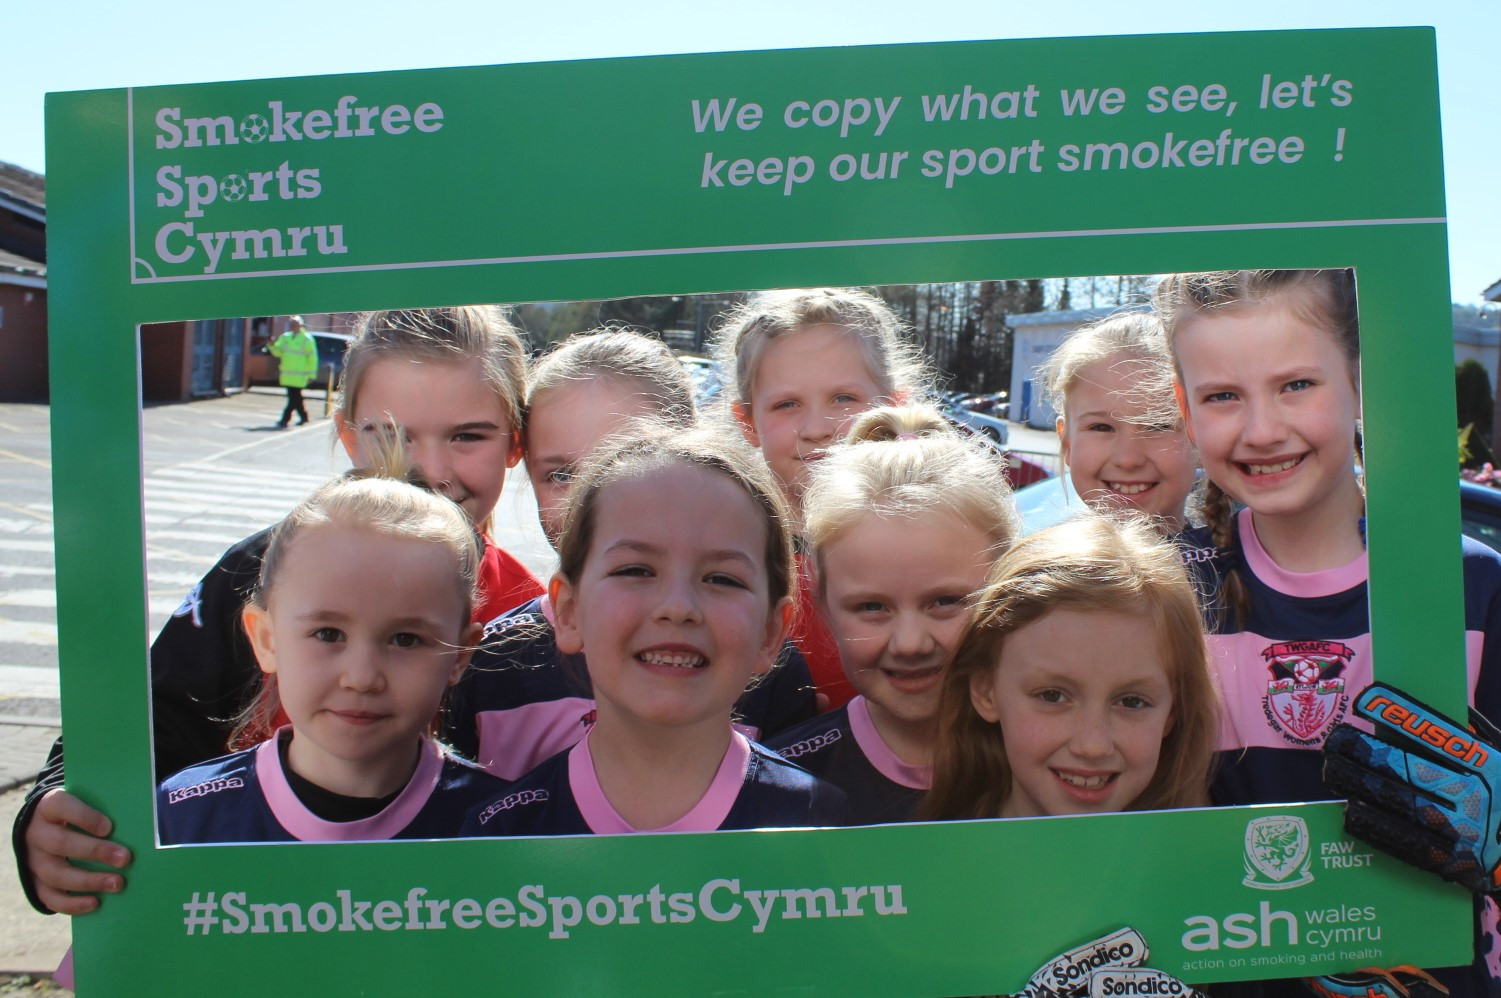 In a recent move to curb the influence of smoking in sport, the Football Association of Wales has banned touchline smoking at children's games ©FAW